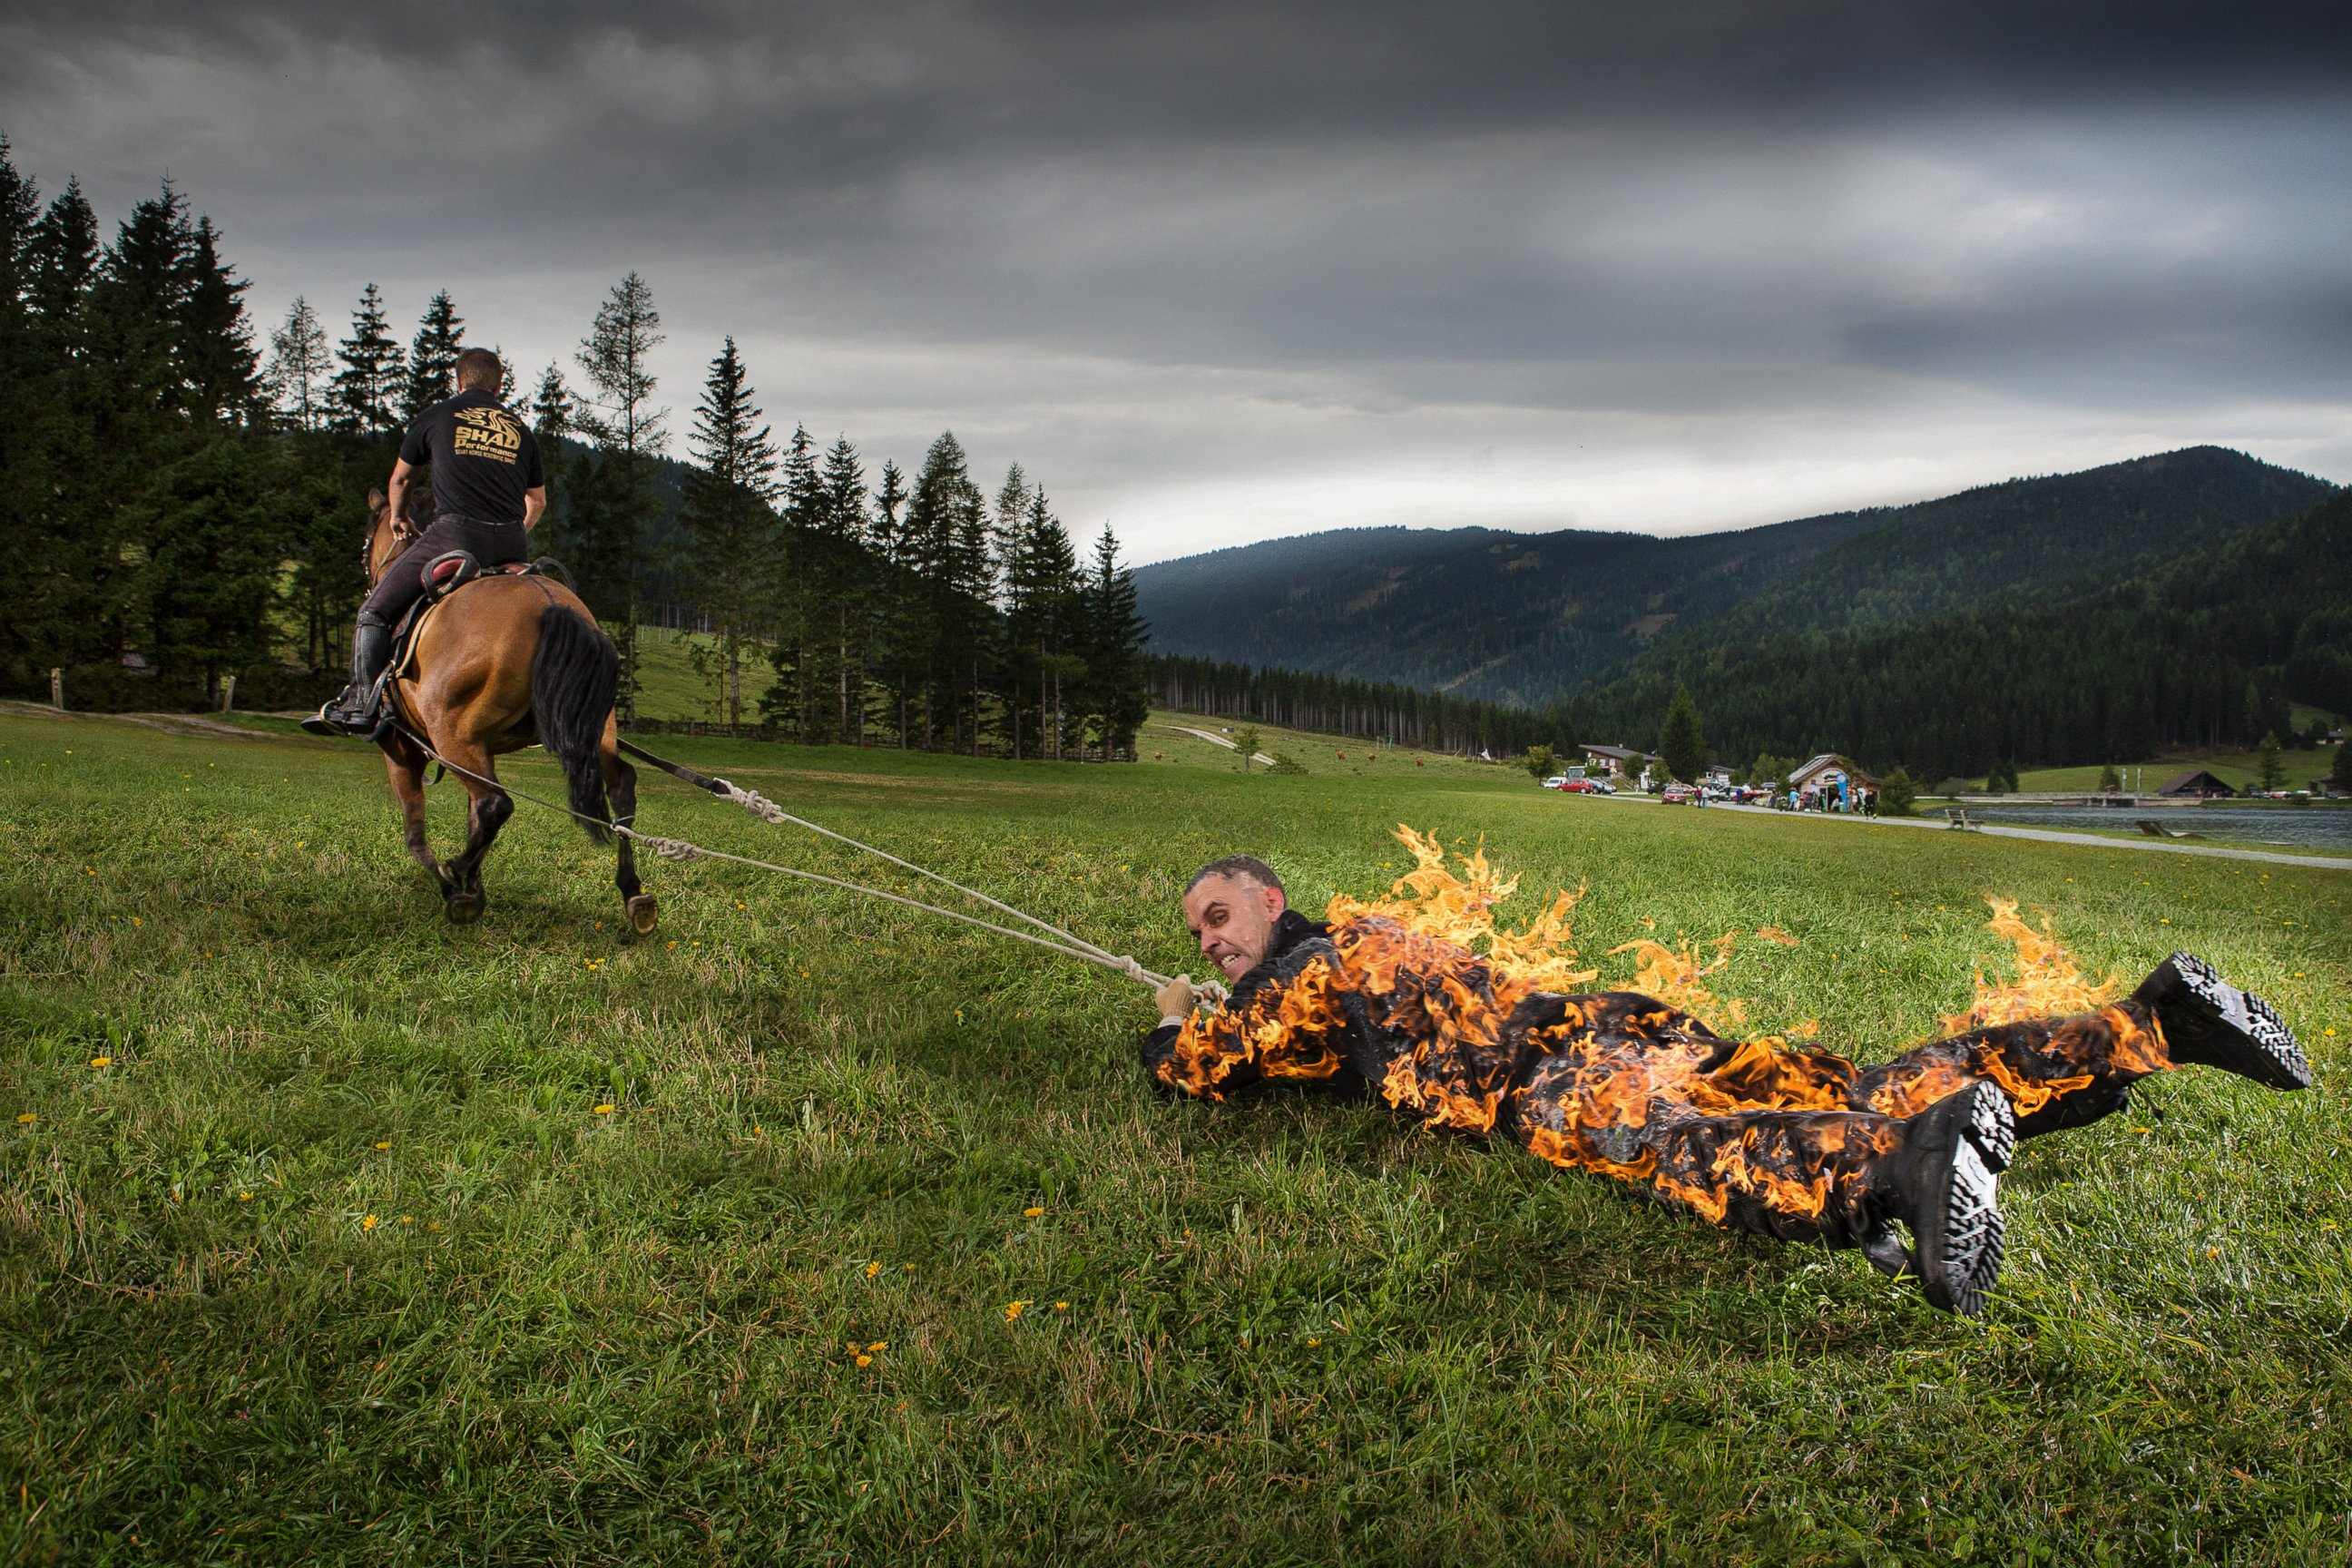 josef todtling has made it into the 2017 guinness book of world records for longest distance pulled by a horse for full body burn